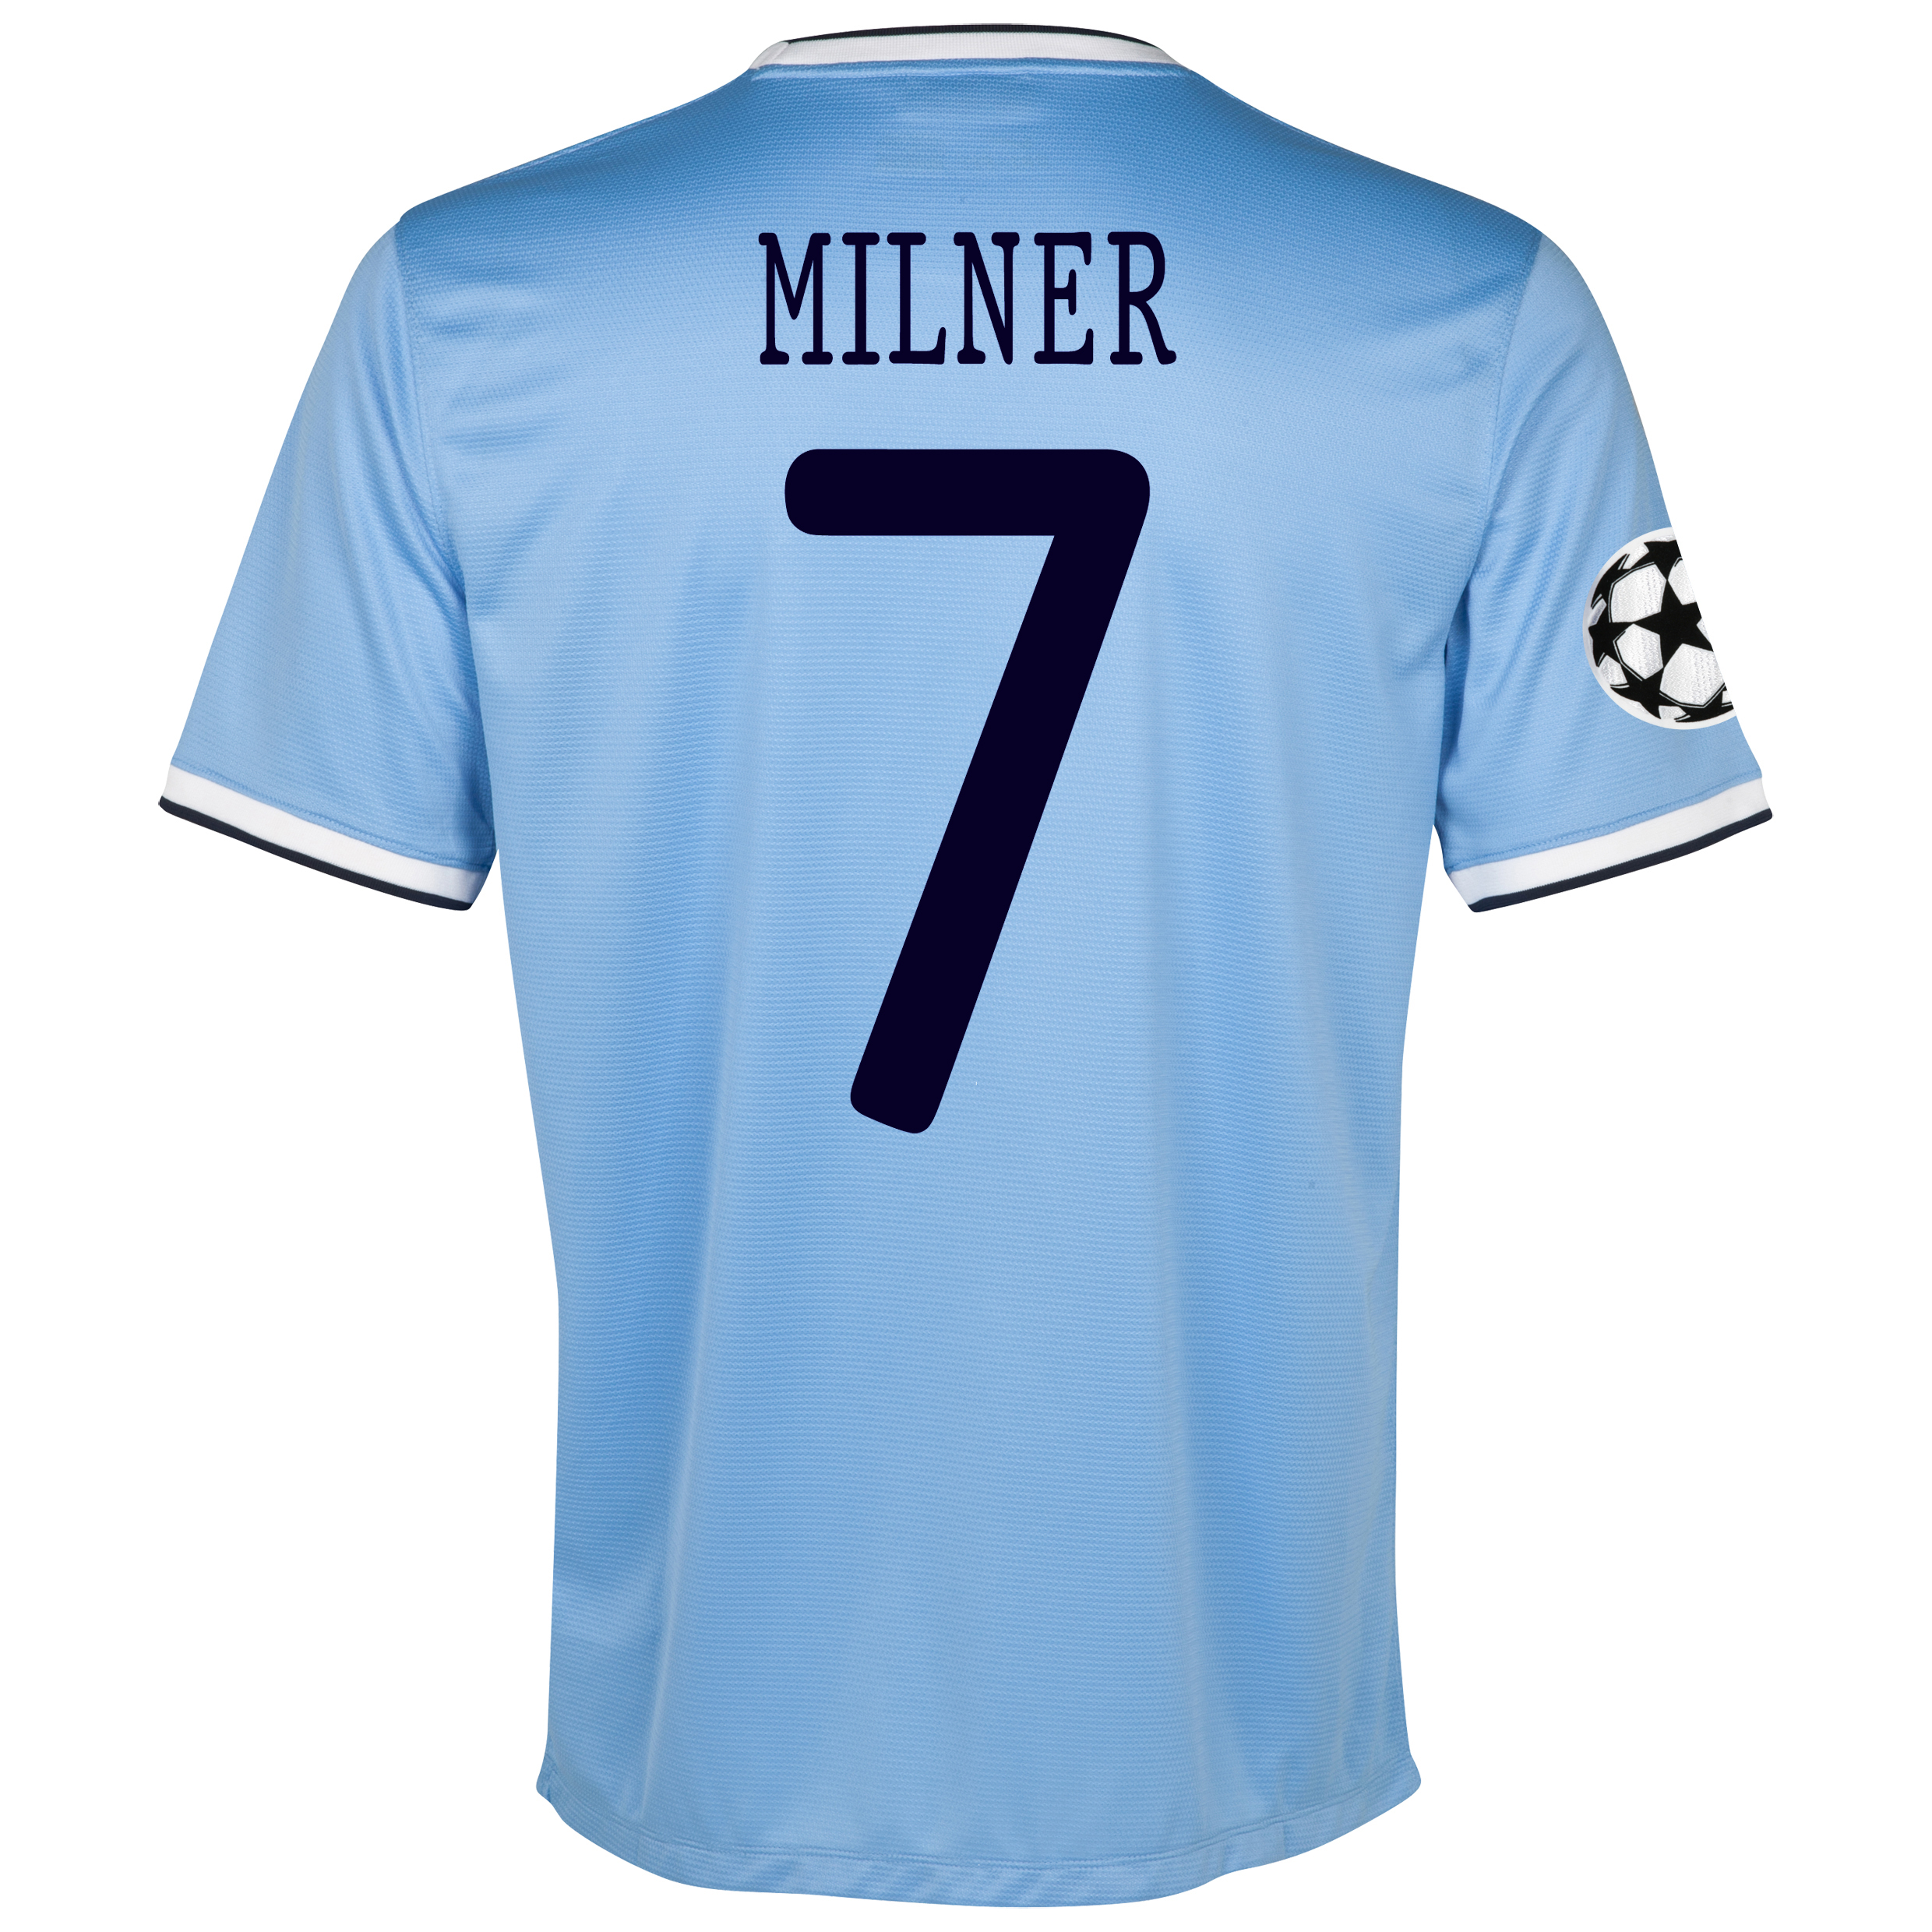 Manchester City UEFA Champions League Home Shirt 2013/14 with Milner 7 printing